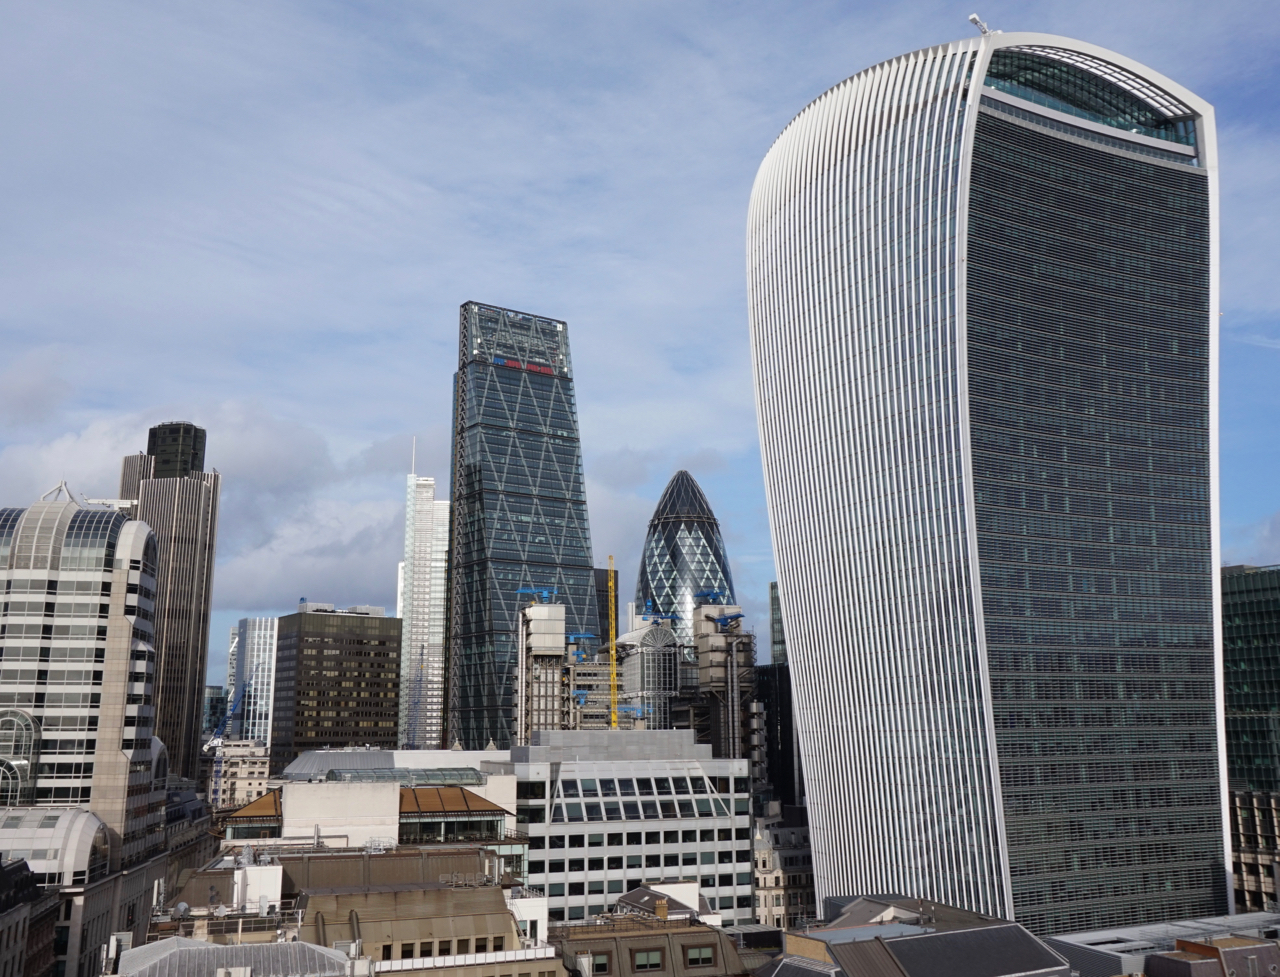 The Cheese grater, the Gherkin and the Walkie Talkie